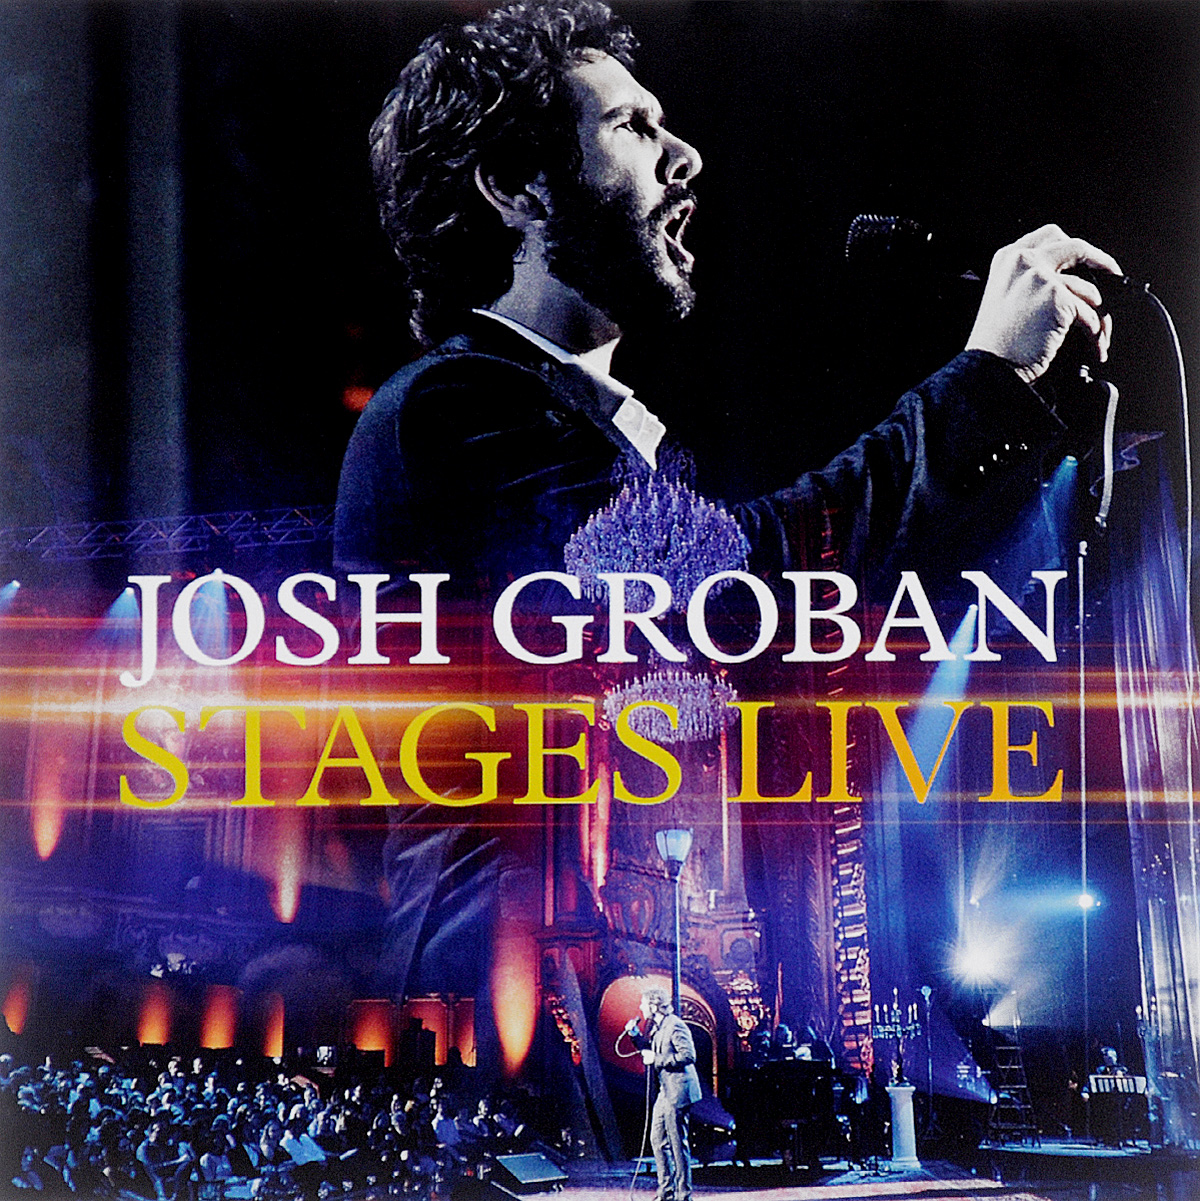 Джош Гробан Josh Groban. Stages Live (CD + DVD) yes yes in the present live from lyon 2 cd dvd